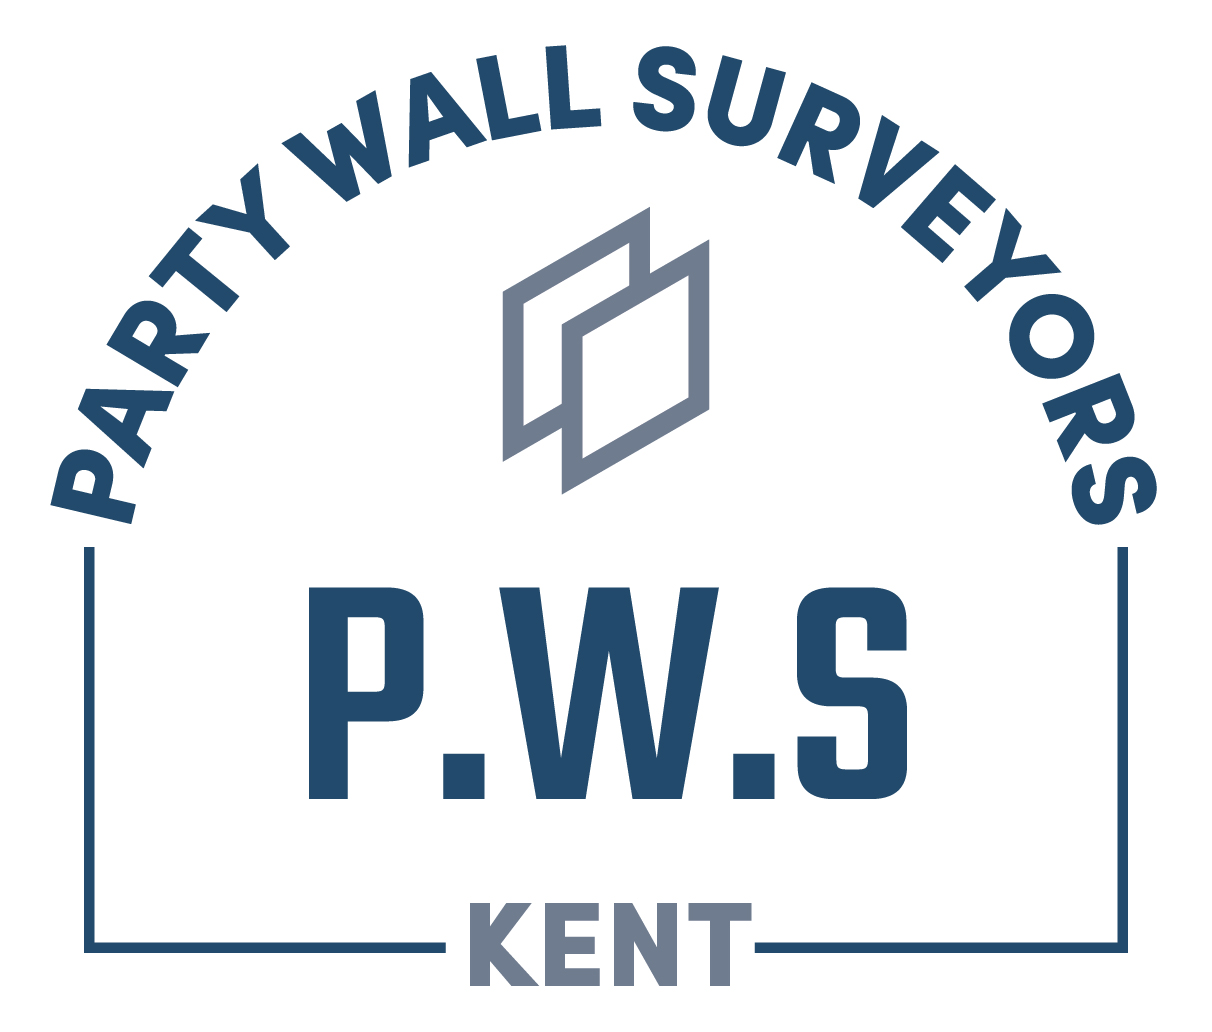 Pws kent 2 01 the party wall act etc 1996 for Party wall act 1996